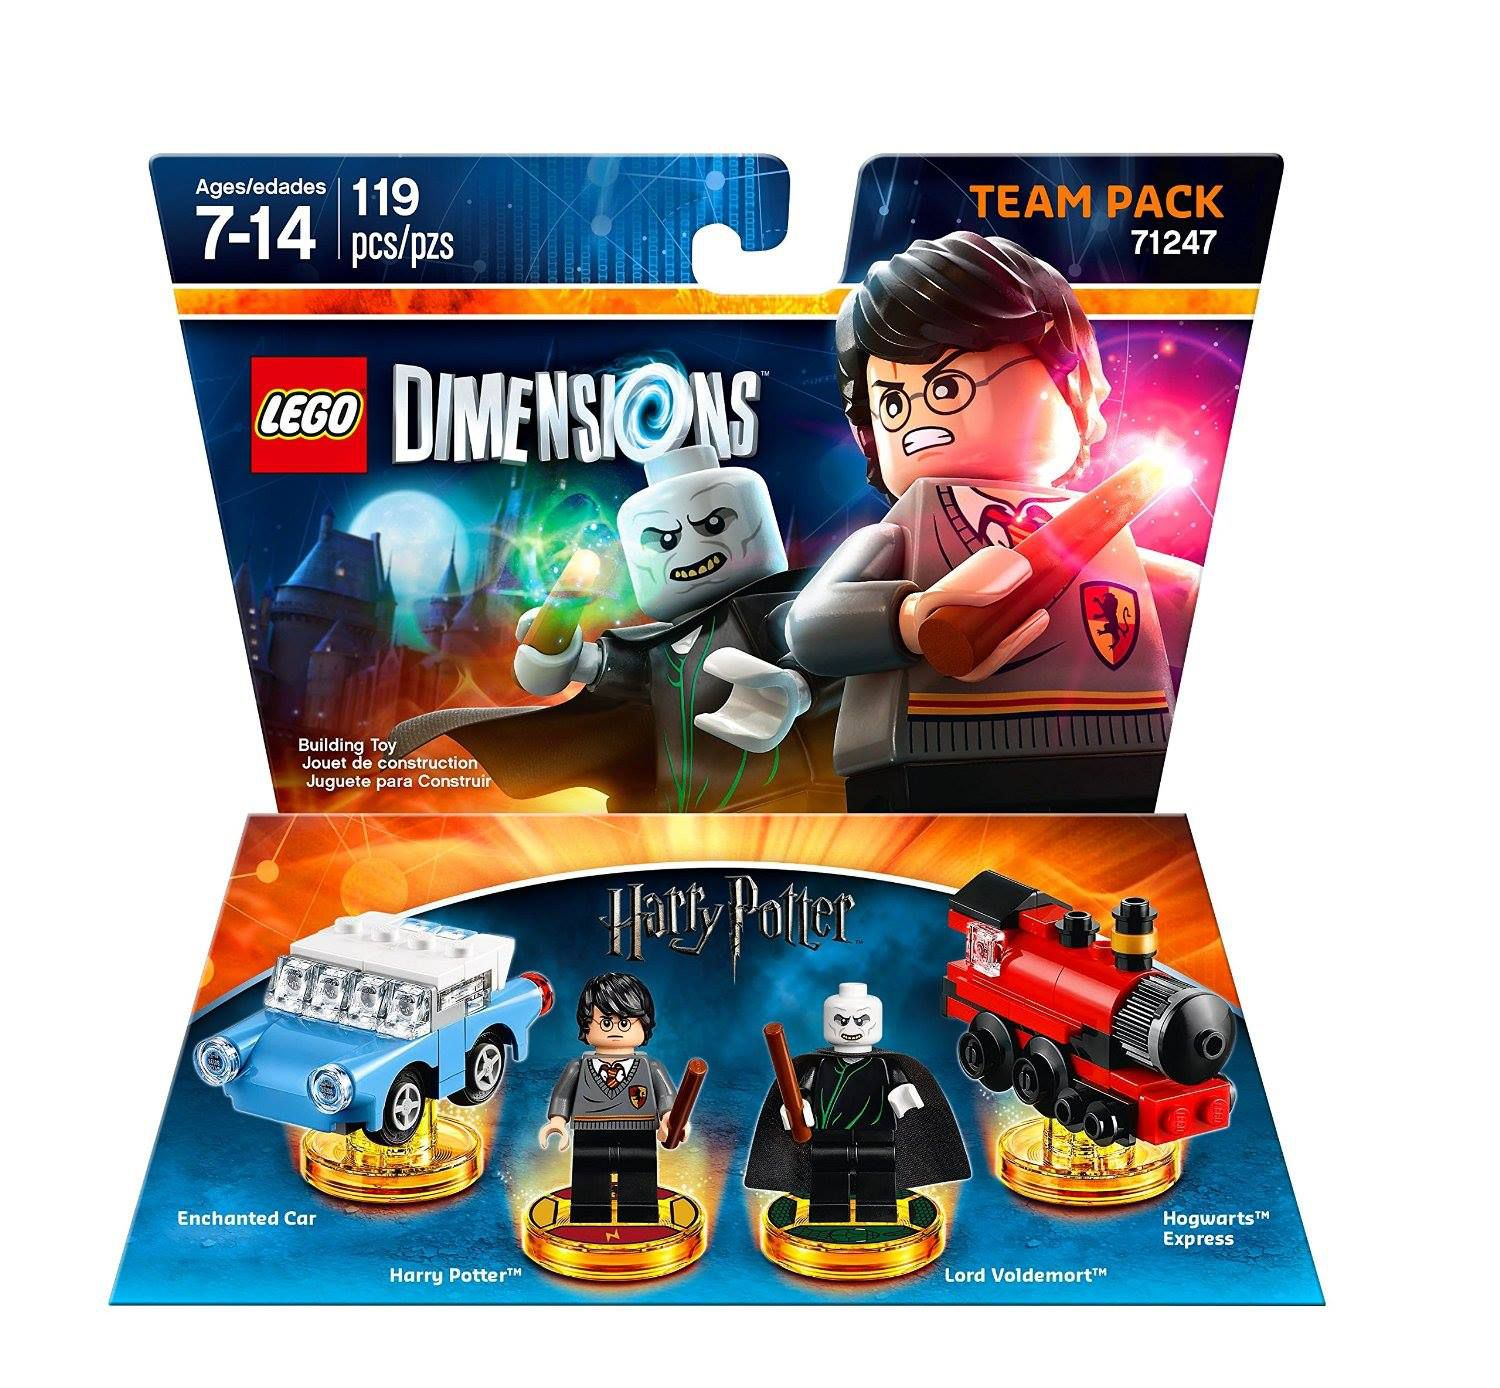 LEGO Dimensions 71247 Team Pack Harry Potter LEGO_DIMENSIONS_71247_Harry-Potter-01.jpg